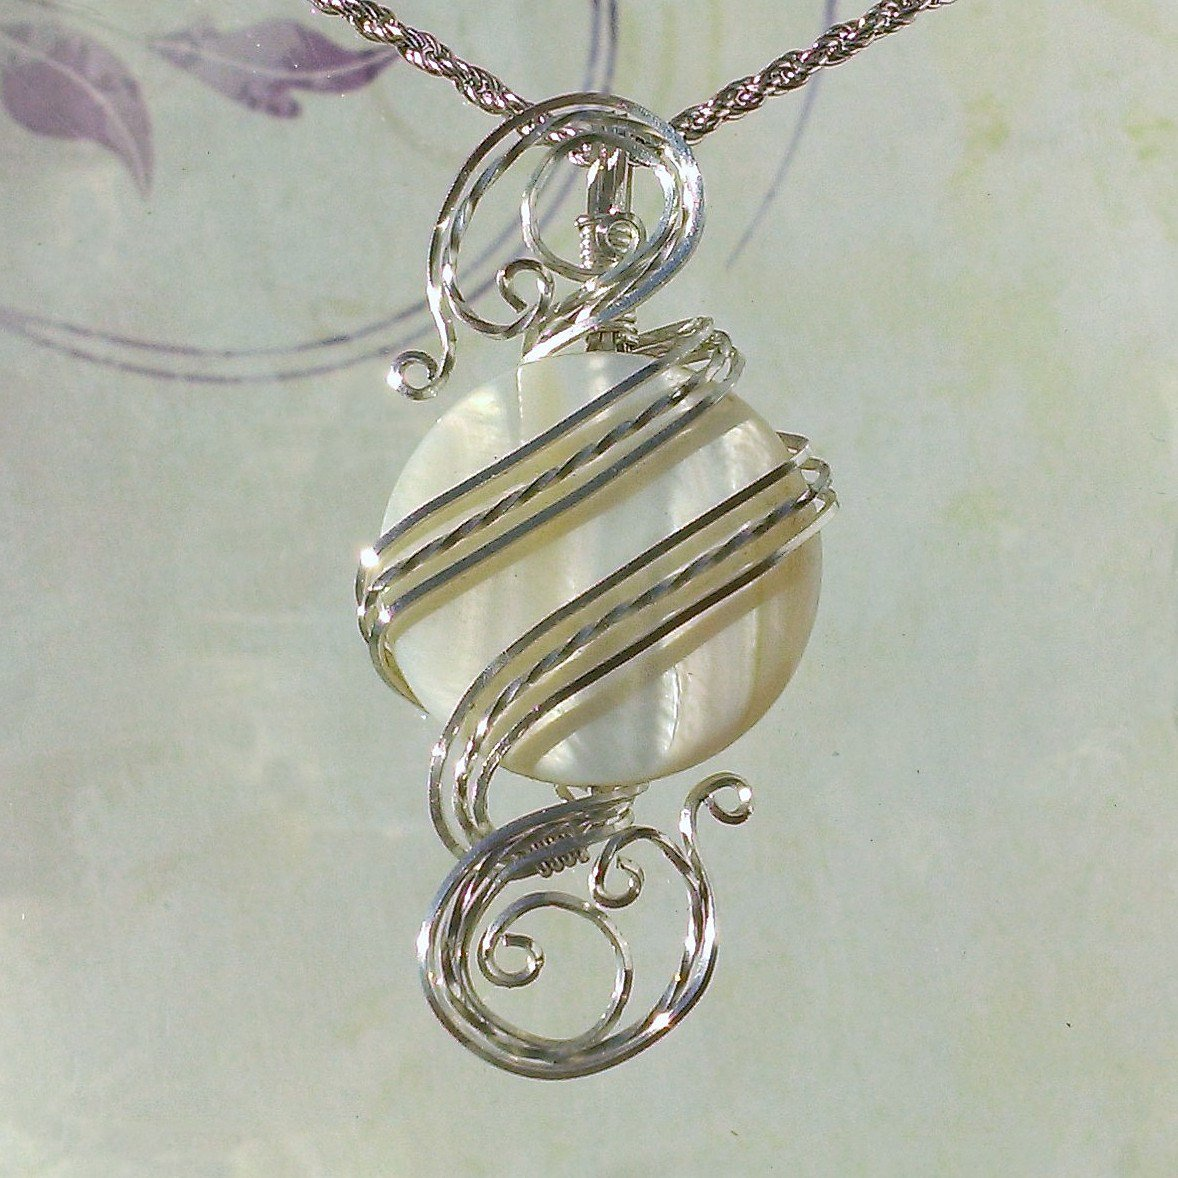 White Shell Womans Pendant Necklace Wire Wrapped Jewelry Handmade in Silver With Free Shipping https://etsy.me/2rKziix #jewelry #handmade #etsymntt #bohemian #etsy #fashion #handmadejewelry #etsygifts